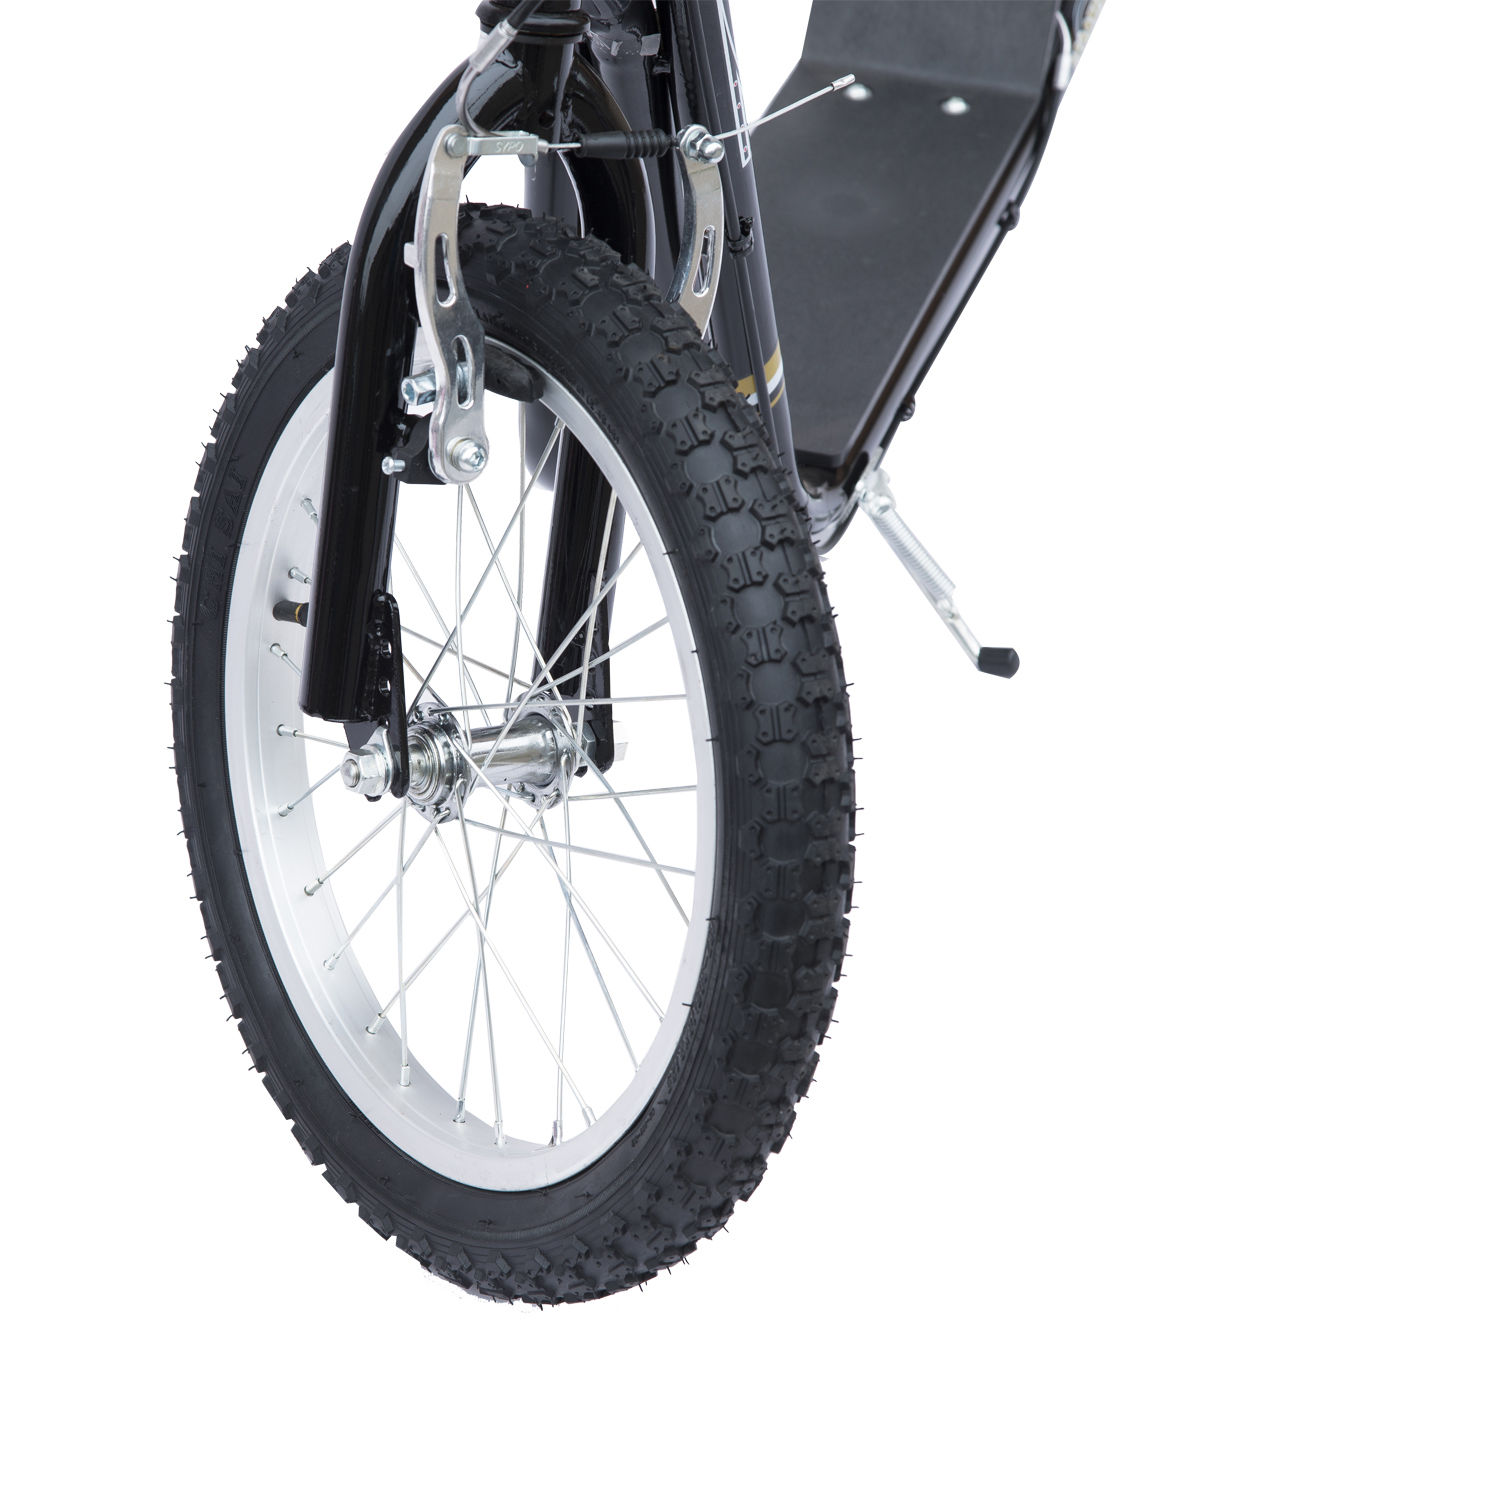 Adjustable-Teen-Kick-Scooter-Kids-Ride-On-Stunt-Street-Bike-16-034-Tire thumbnail 6